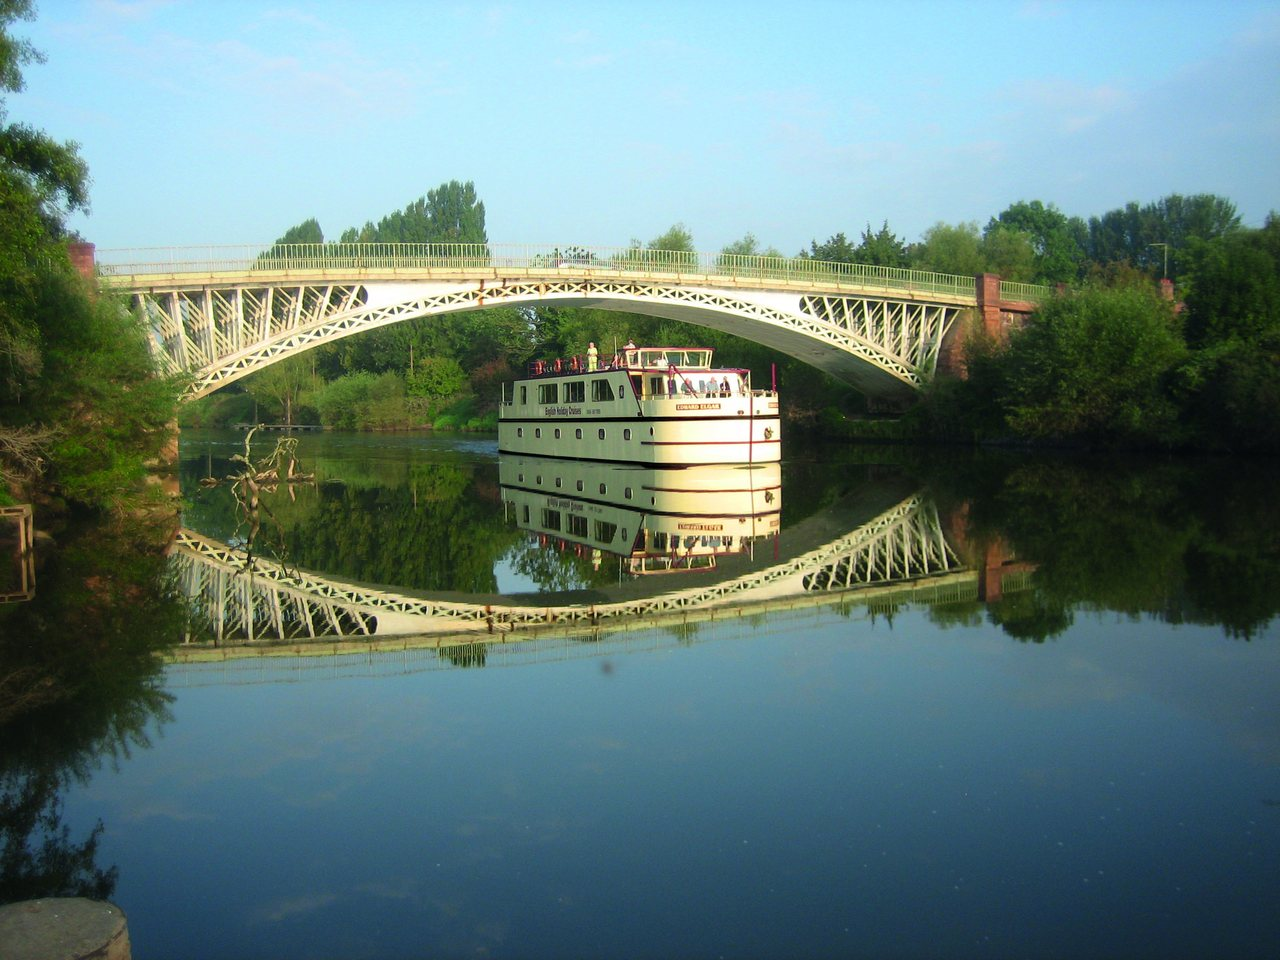 Cruise passing Holt Worcestershire